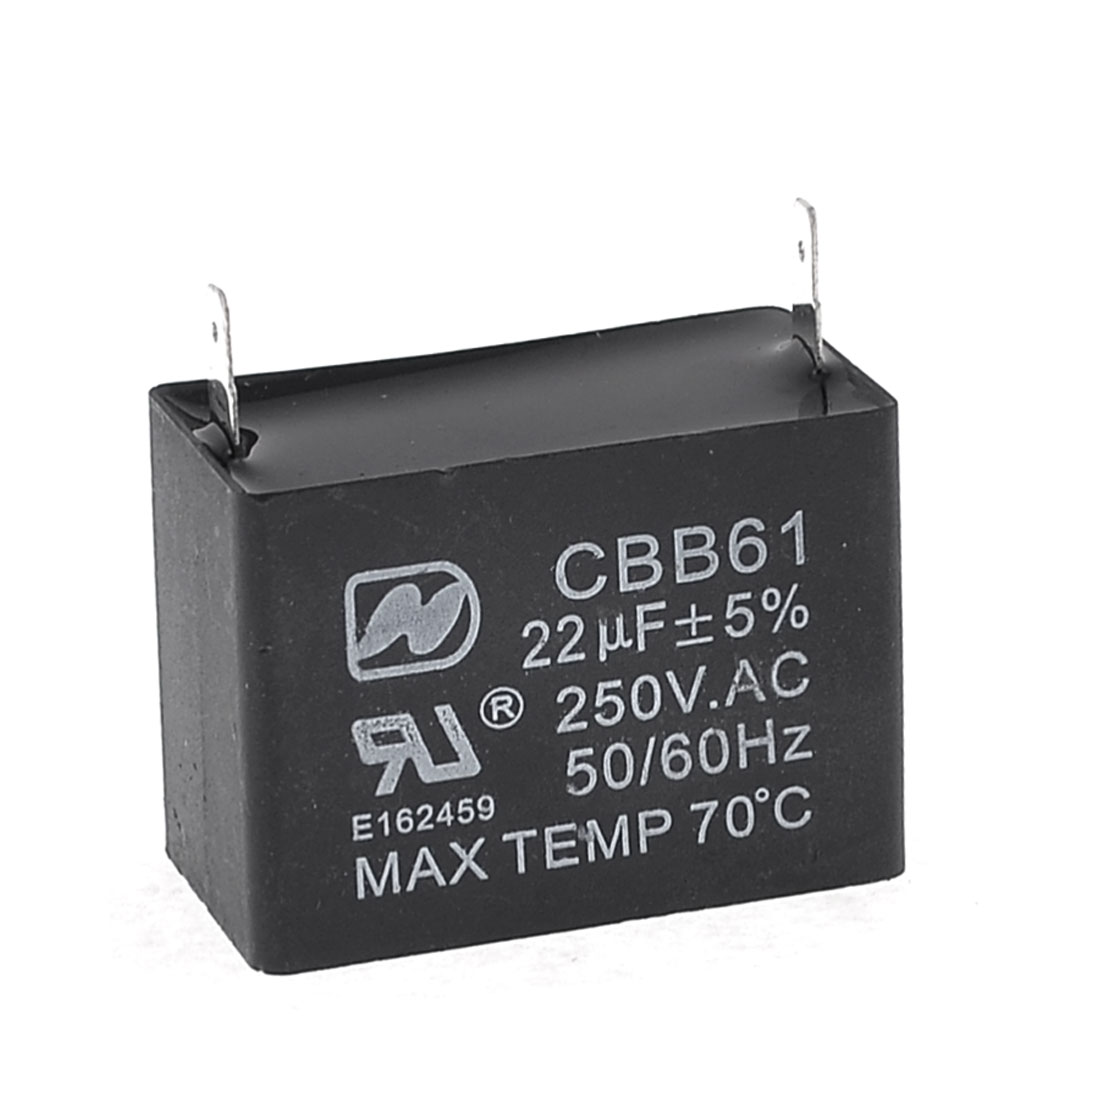 CBB61 Polypropylene Film Motor Run Capacitor 2 Terminals 22uF AC 250V Black